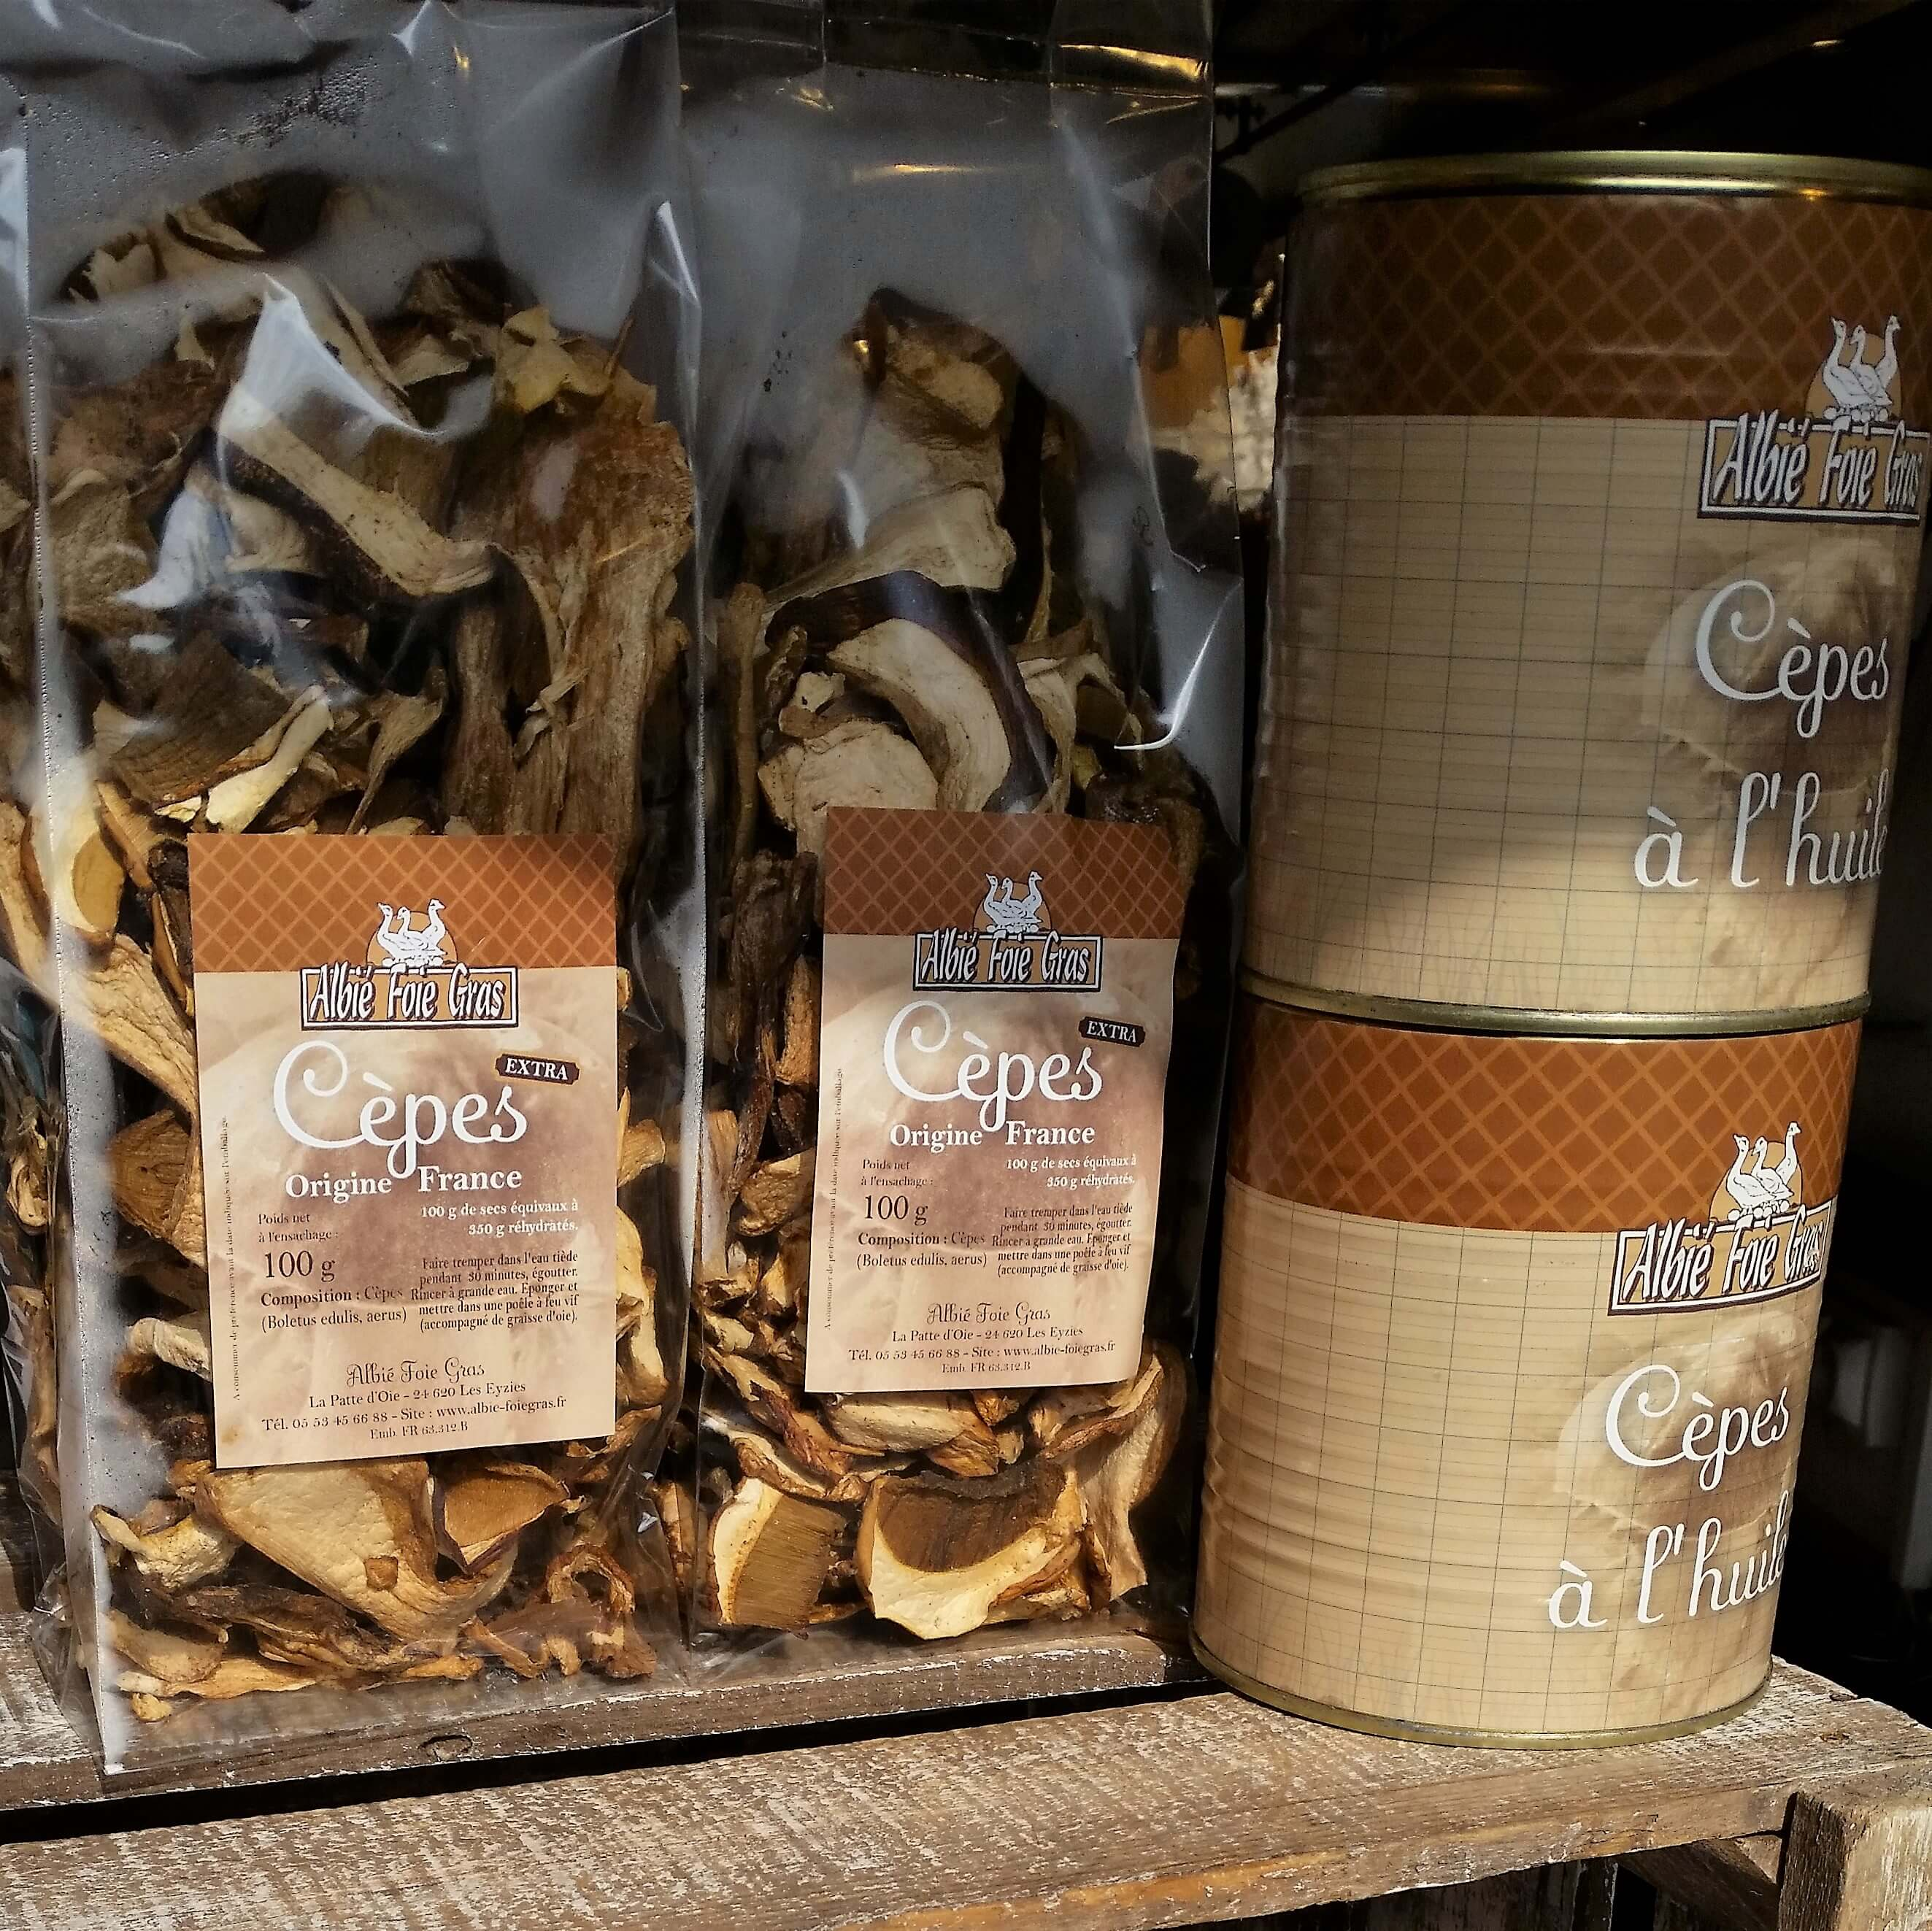 Dried Cepes